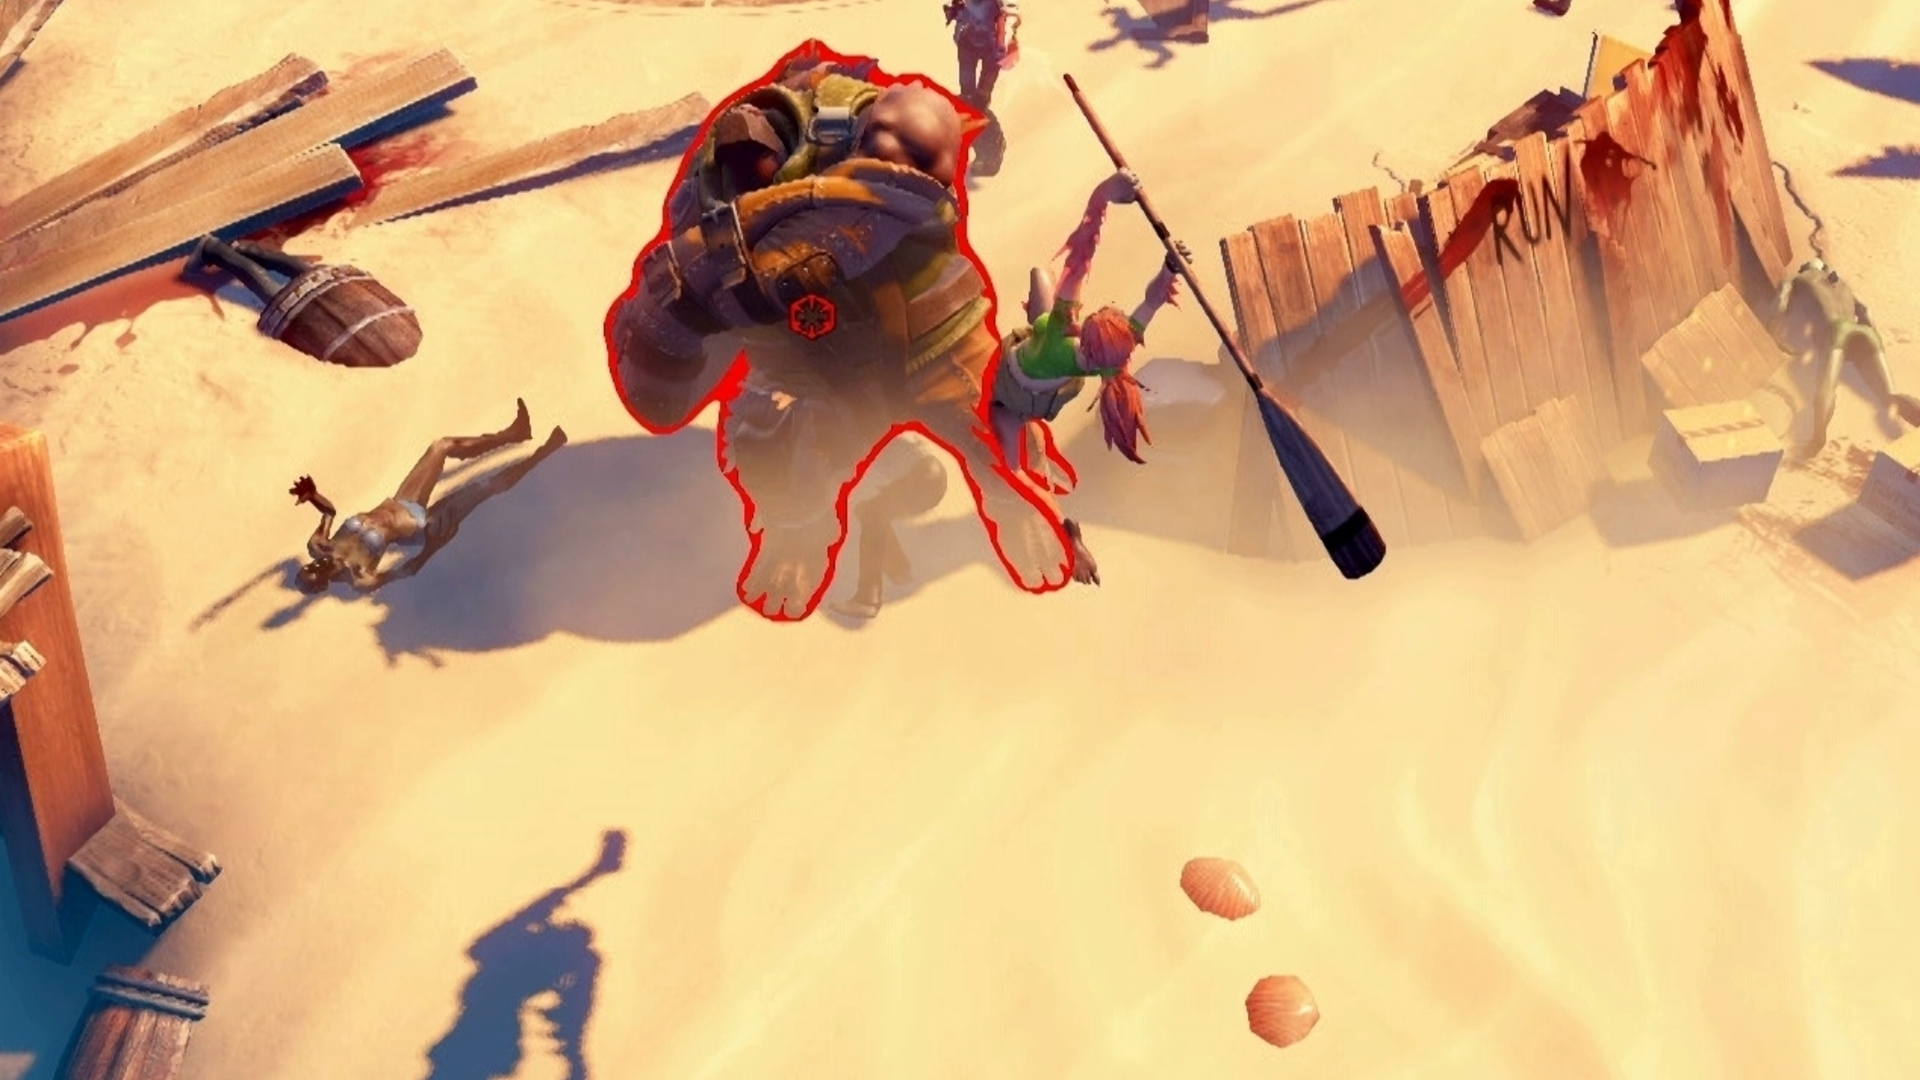 Dead Island's MOBA spin-off developed by Bloodline Champions studio